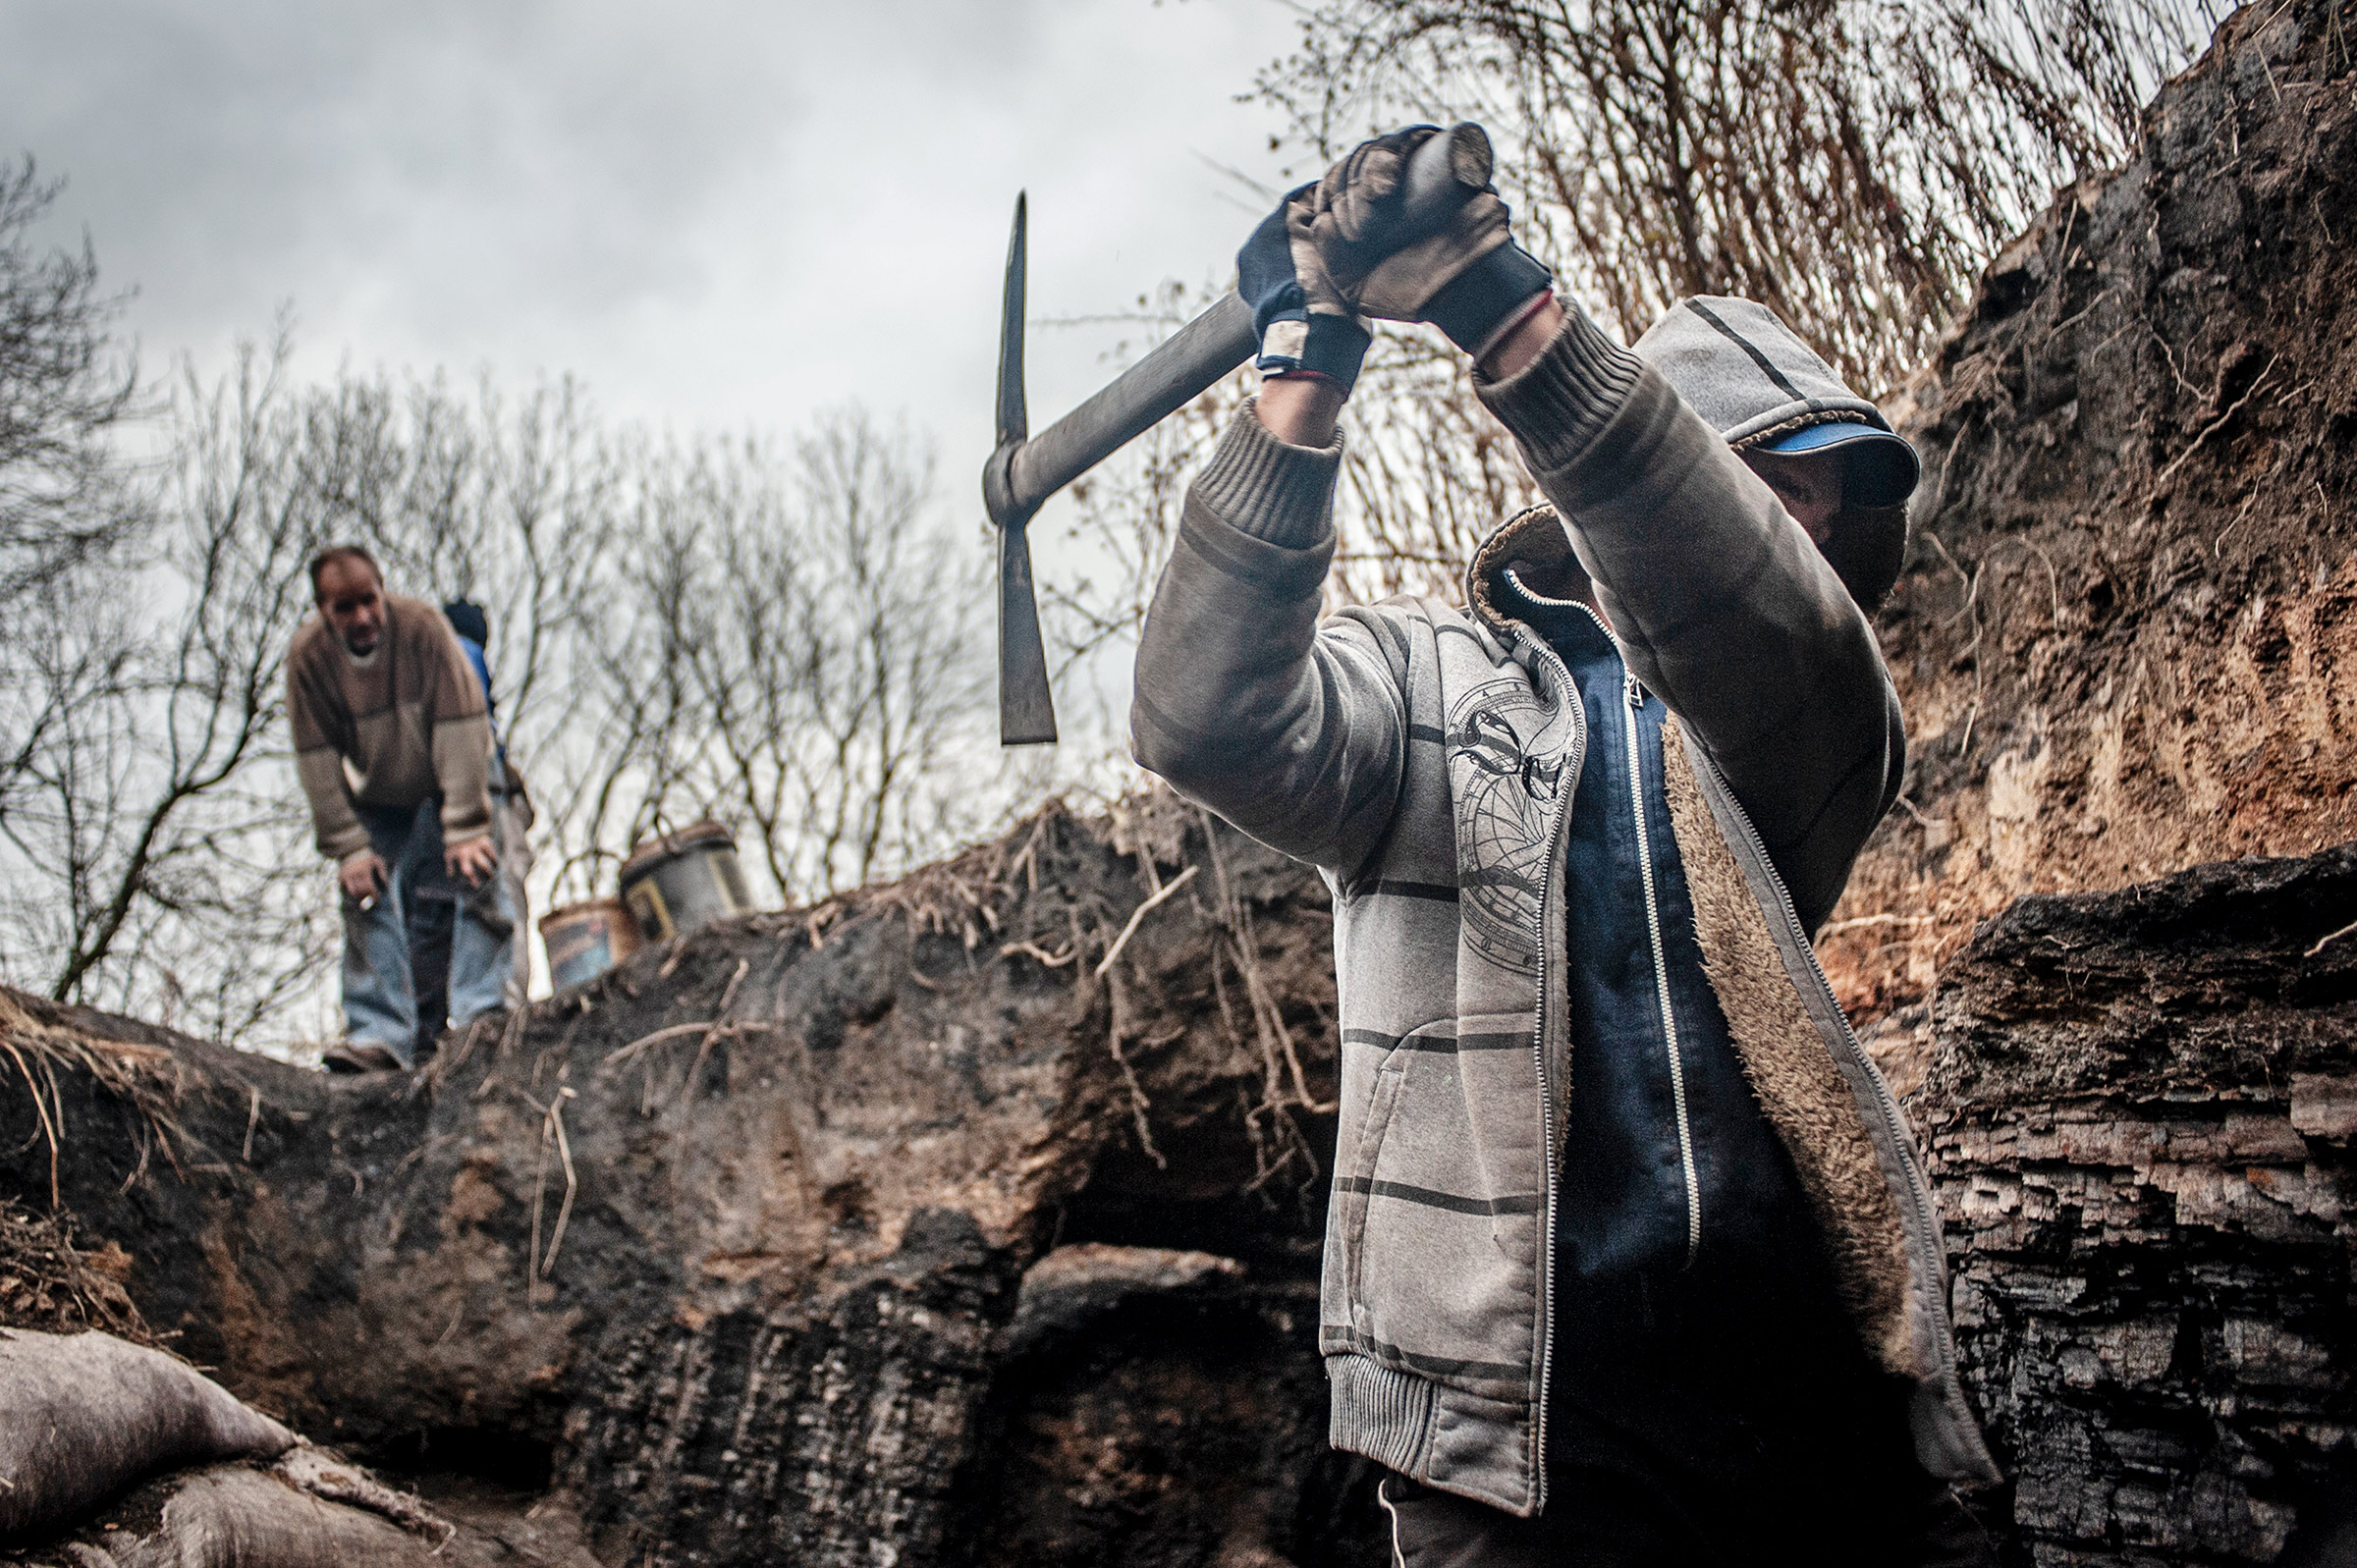 Men illegally mine for coal to be used to heat homes in Walbrzych, Poland, in 2013.